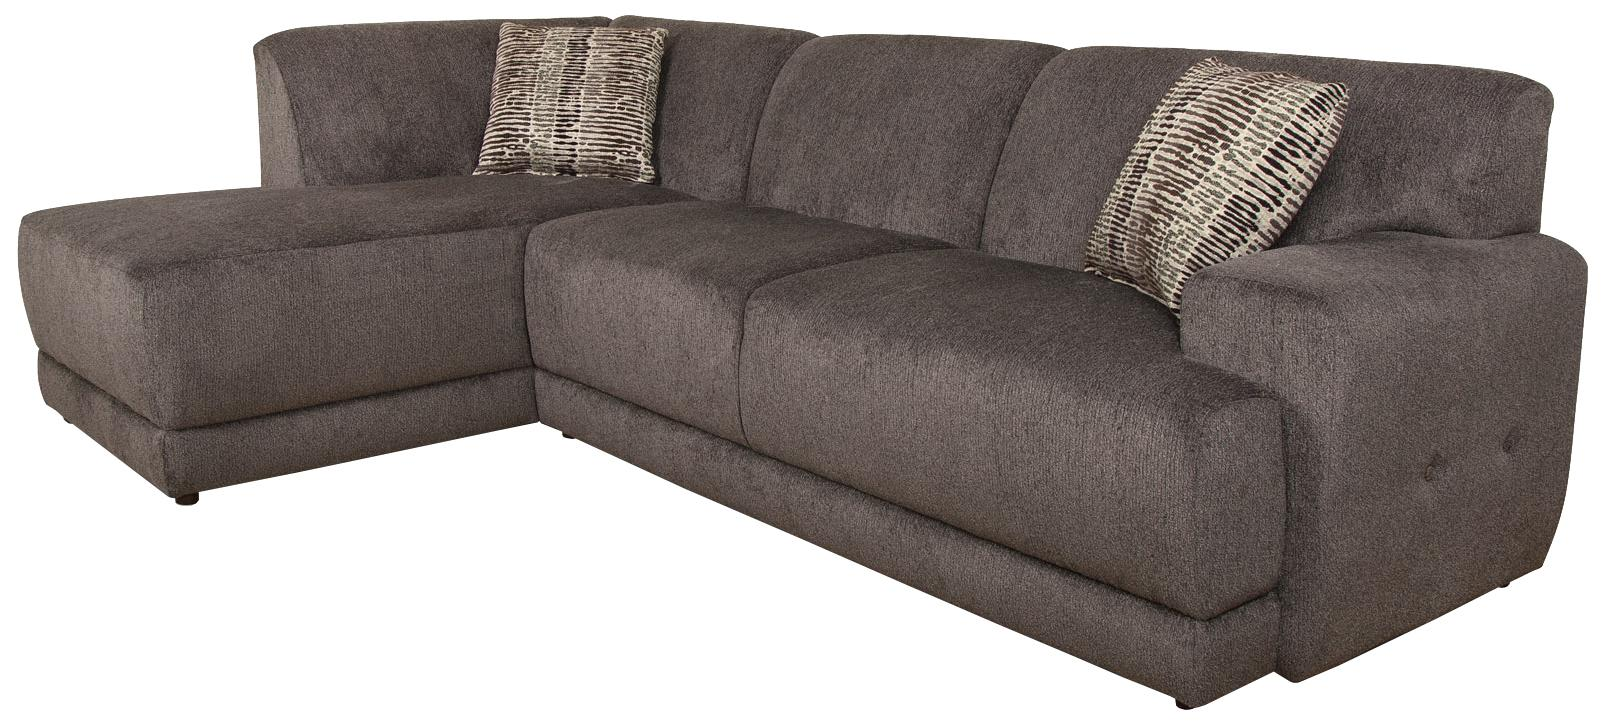 Cole  Sectional Sofa with Left Facing Chaise by England at VanDrie Home Furnishings